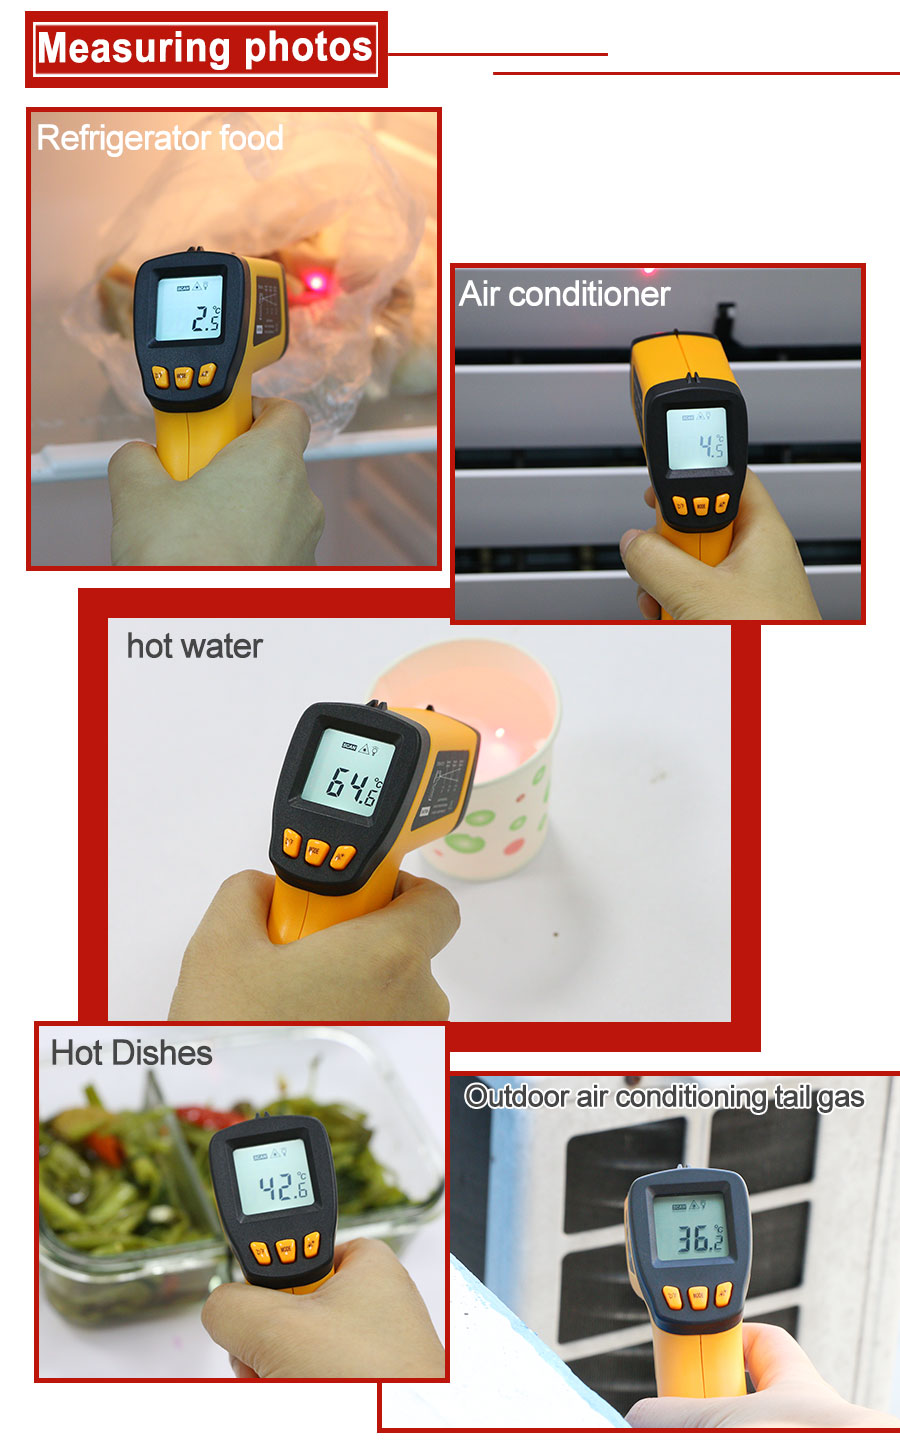 H3c21d2cedaa145e4a6551a2b0cce080eQ RZ IR Infrared Thermometer Thermal Imager Handheld Digital Electronic Outdoor Non-Contact Laser Pyrometer Point Gun Thermometer